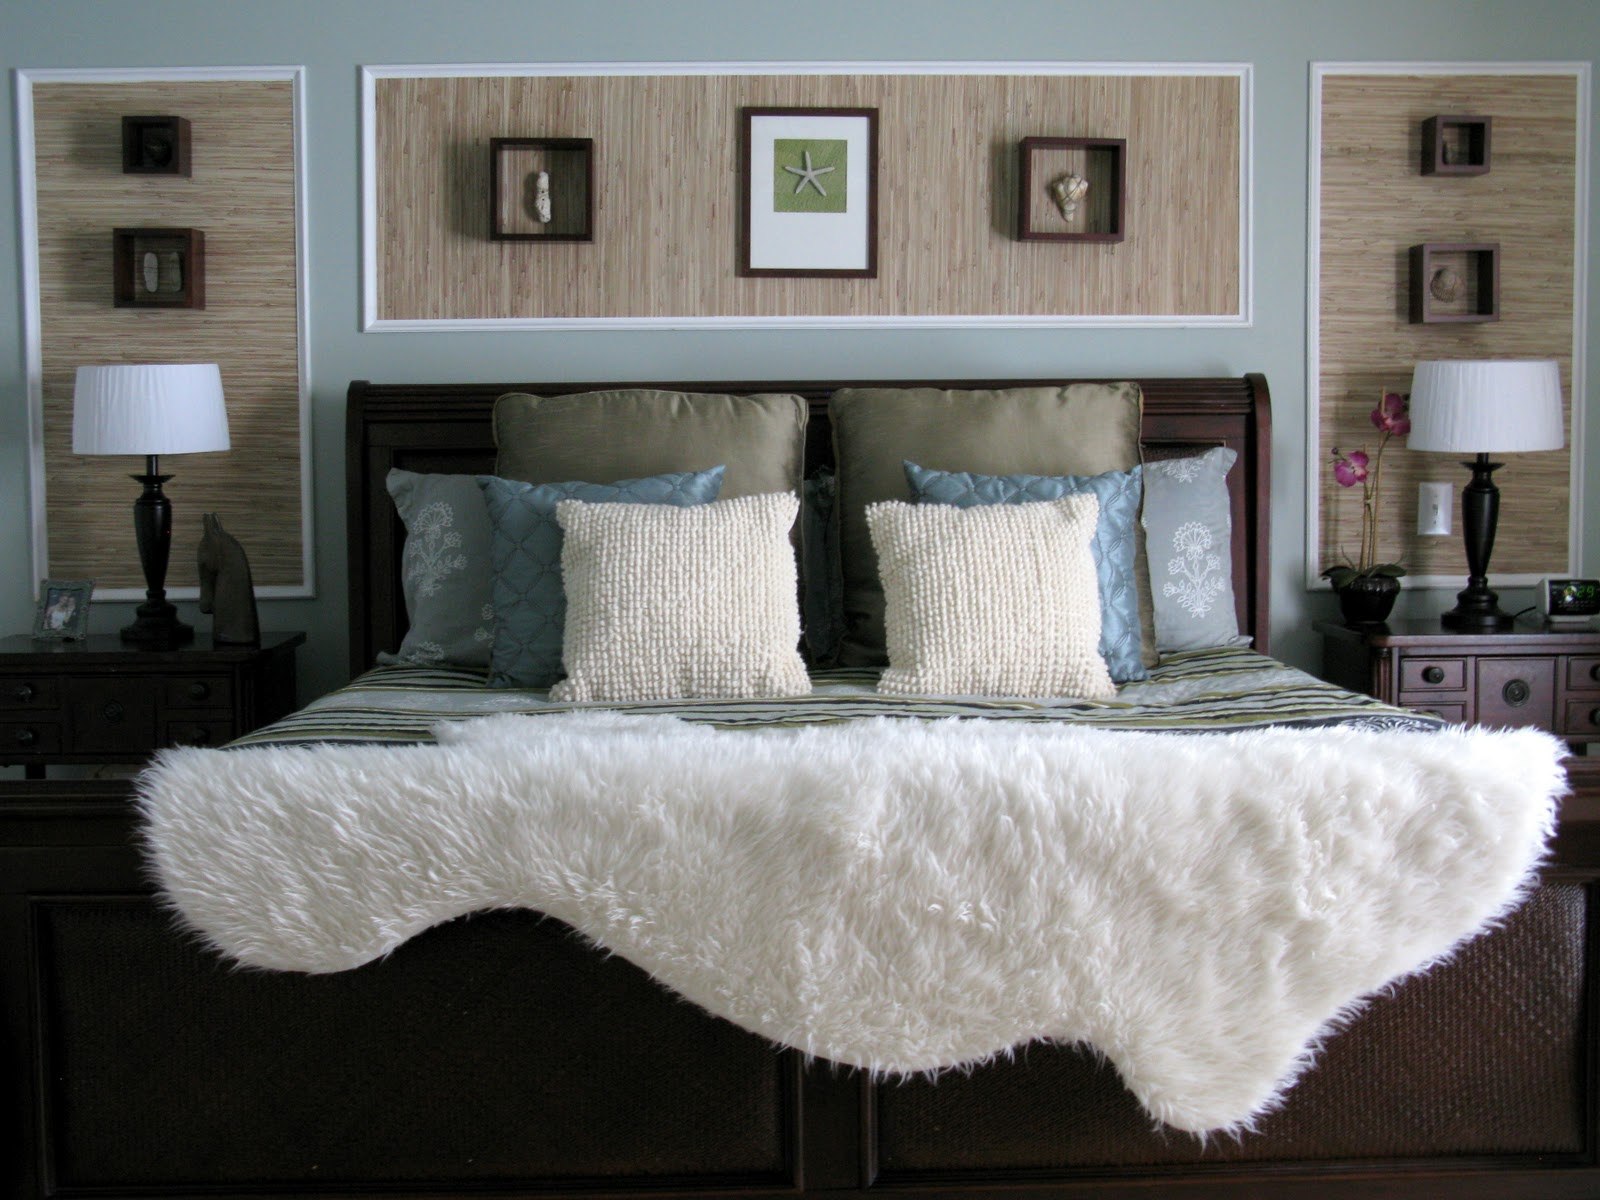 Loveyourroom voted one of the top bedrooms by houzz for Bedroom ideas headboard